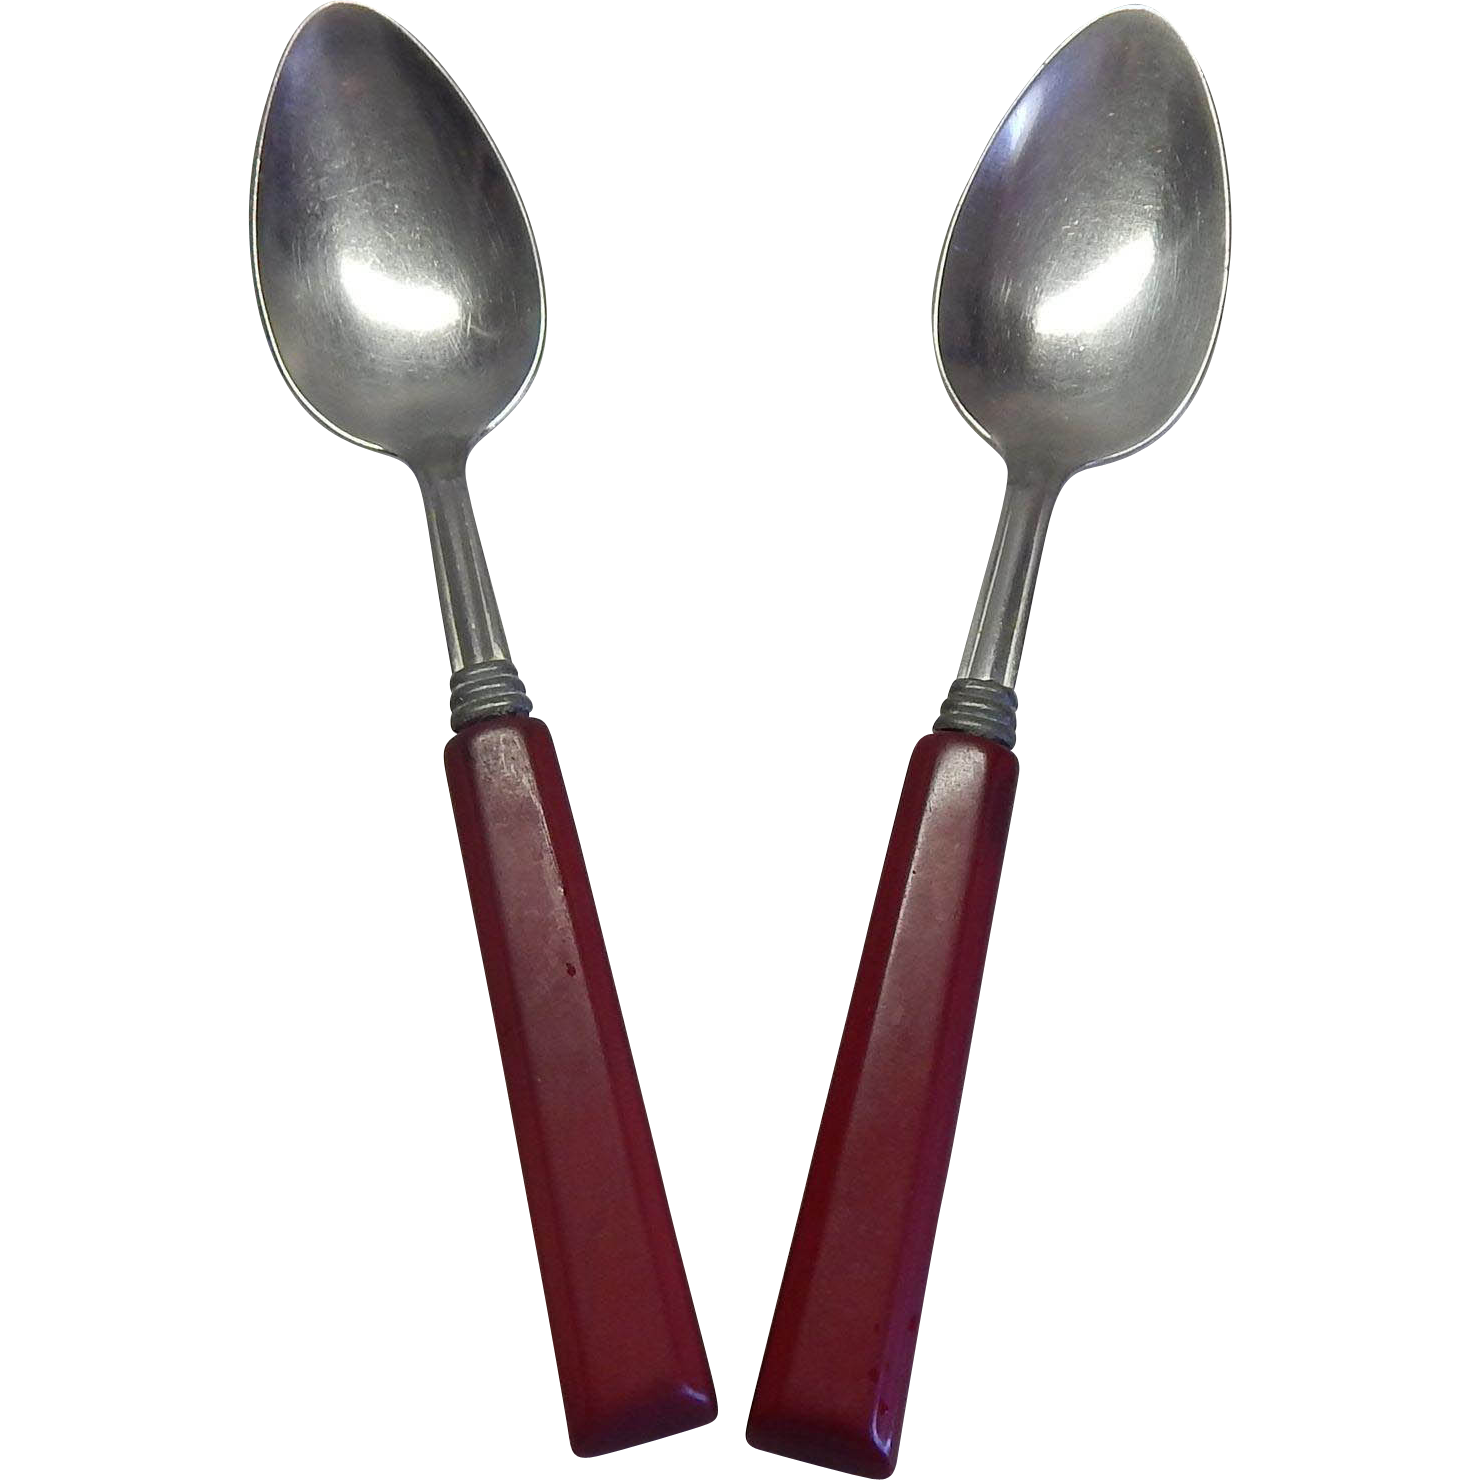 Two Vintage Serving Spoons with Plastic Handles